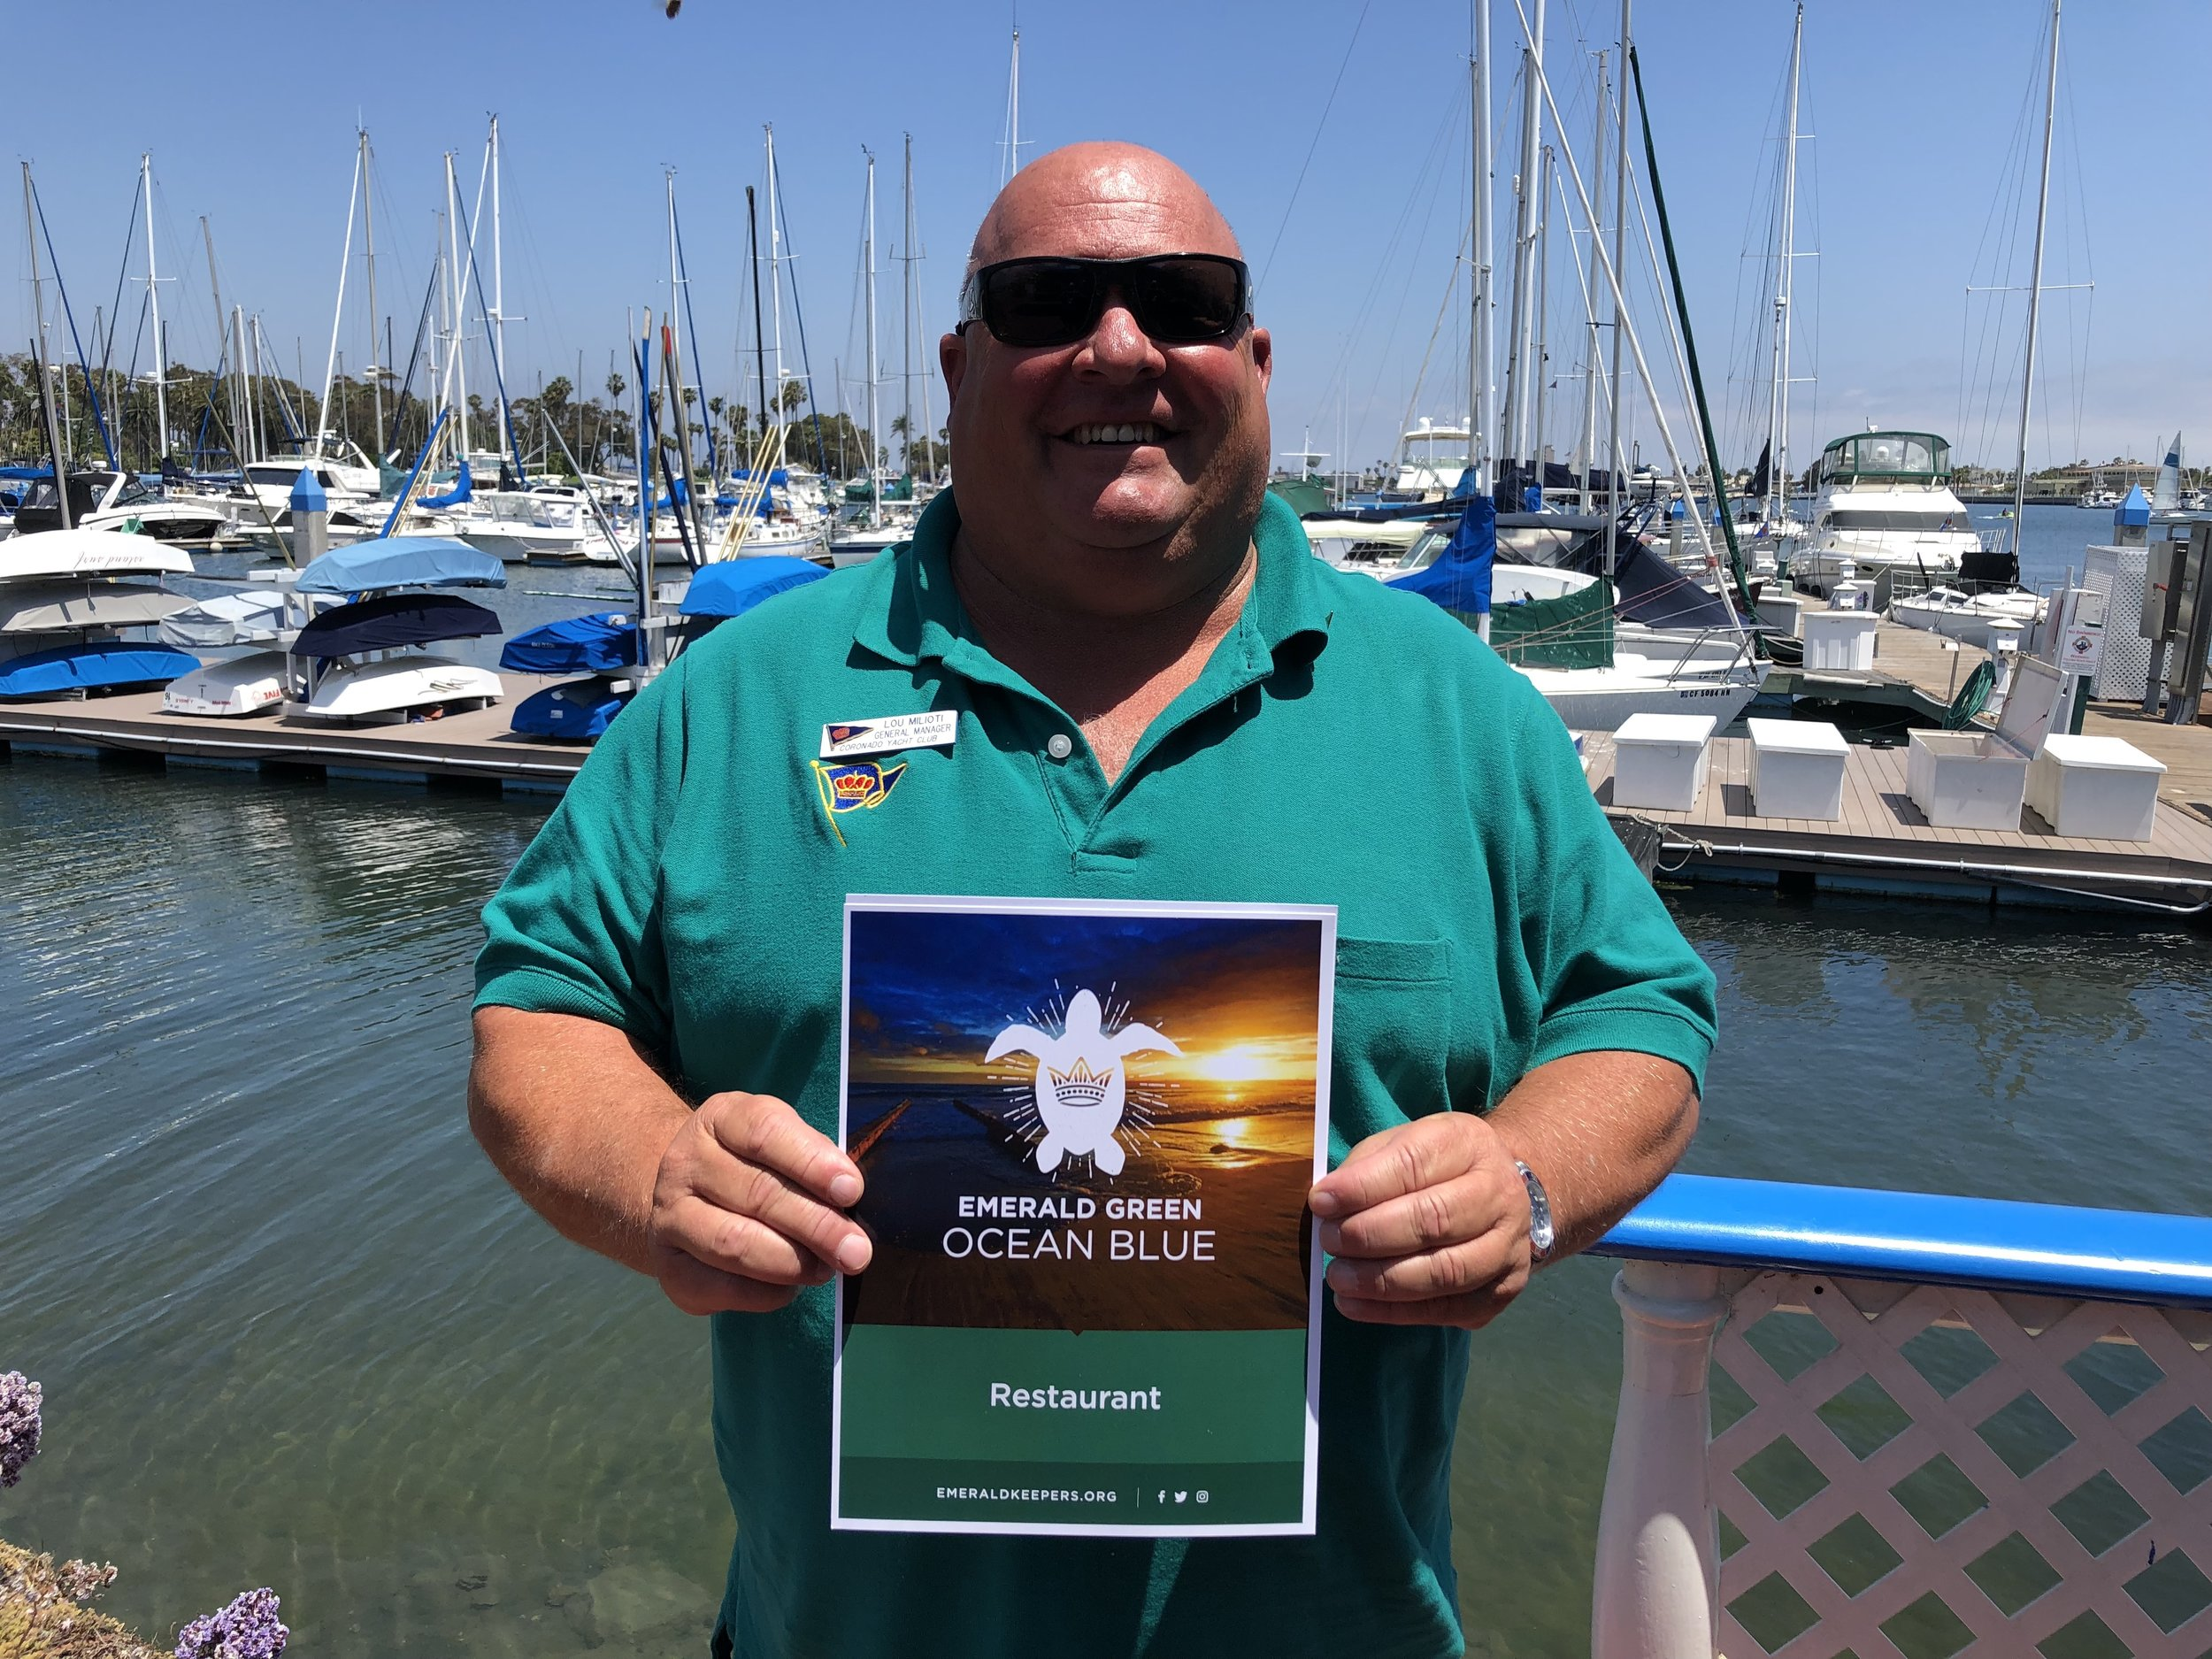 """""""The mission statement of the Coronado Yacht Club is to promote boating and the use of the natural environment that we have for yachting sports –sailing and fishing; and so it is natural for us to be good keepers of our environment and doing everything we can to protect the environment for generations to come.""""                                                                                                          - Lou Milioti, General Manager, Coronado Yacht Club"""